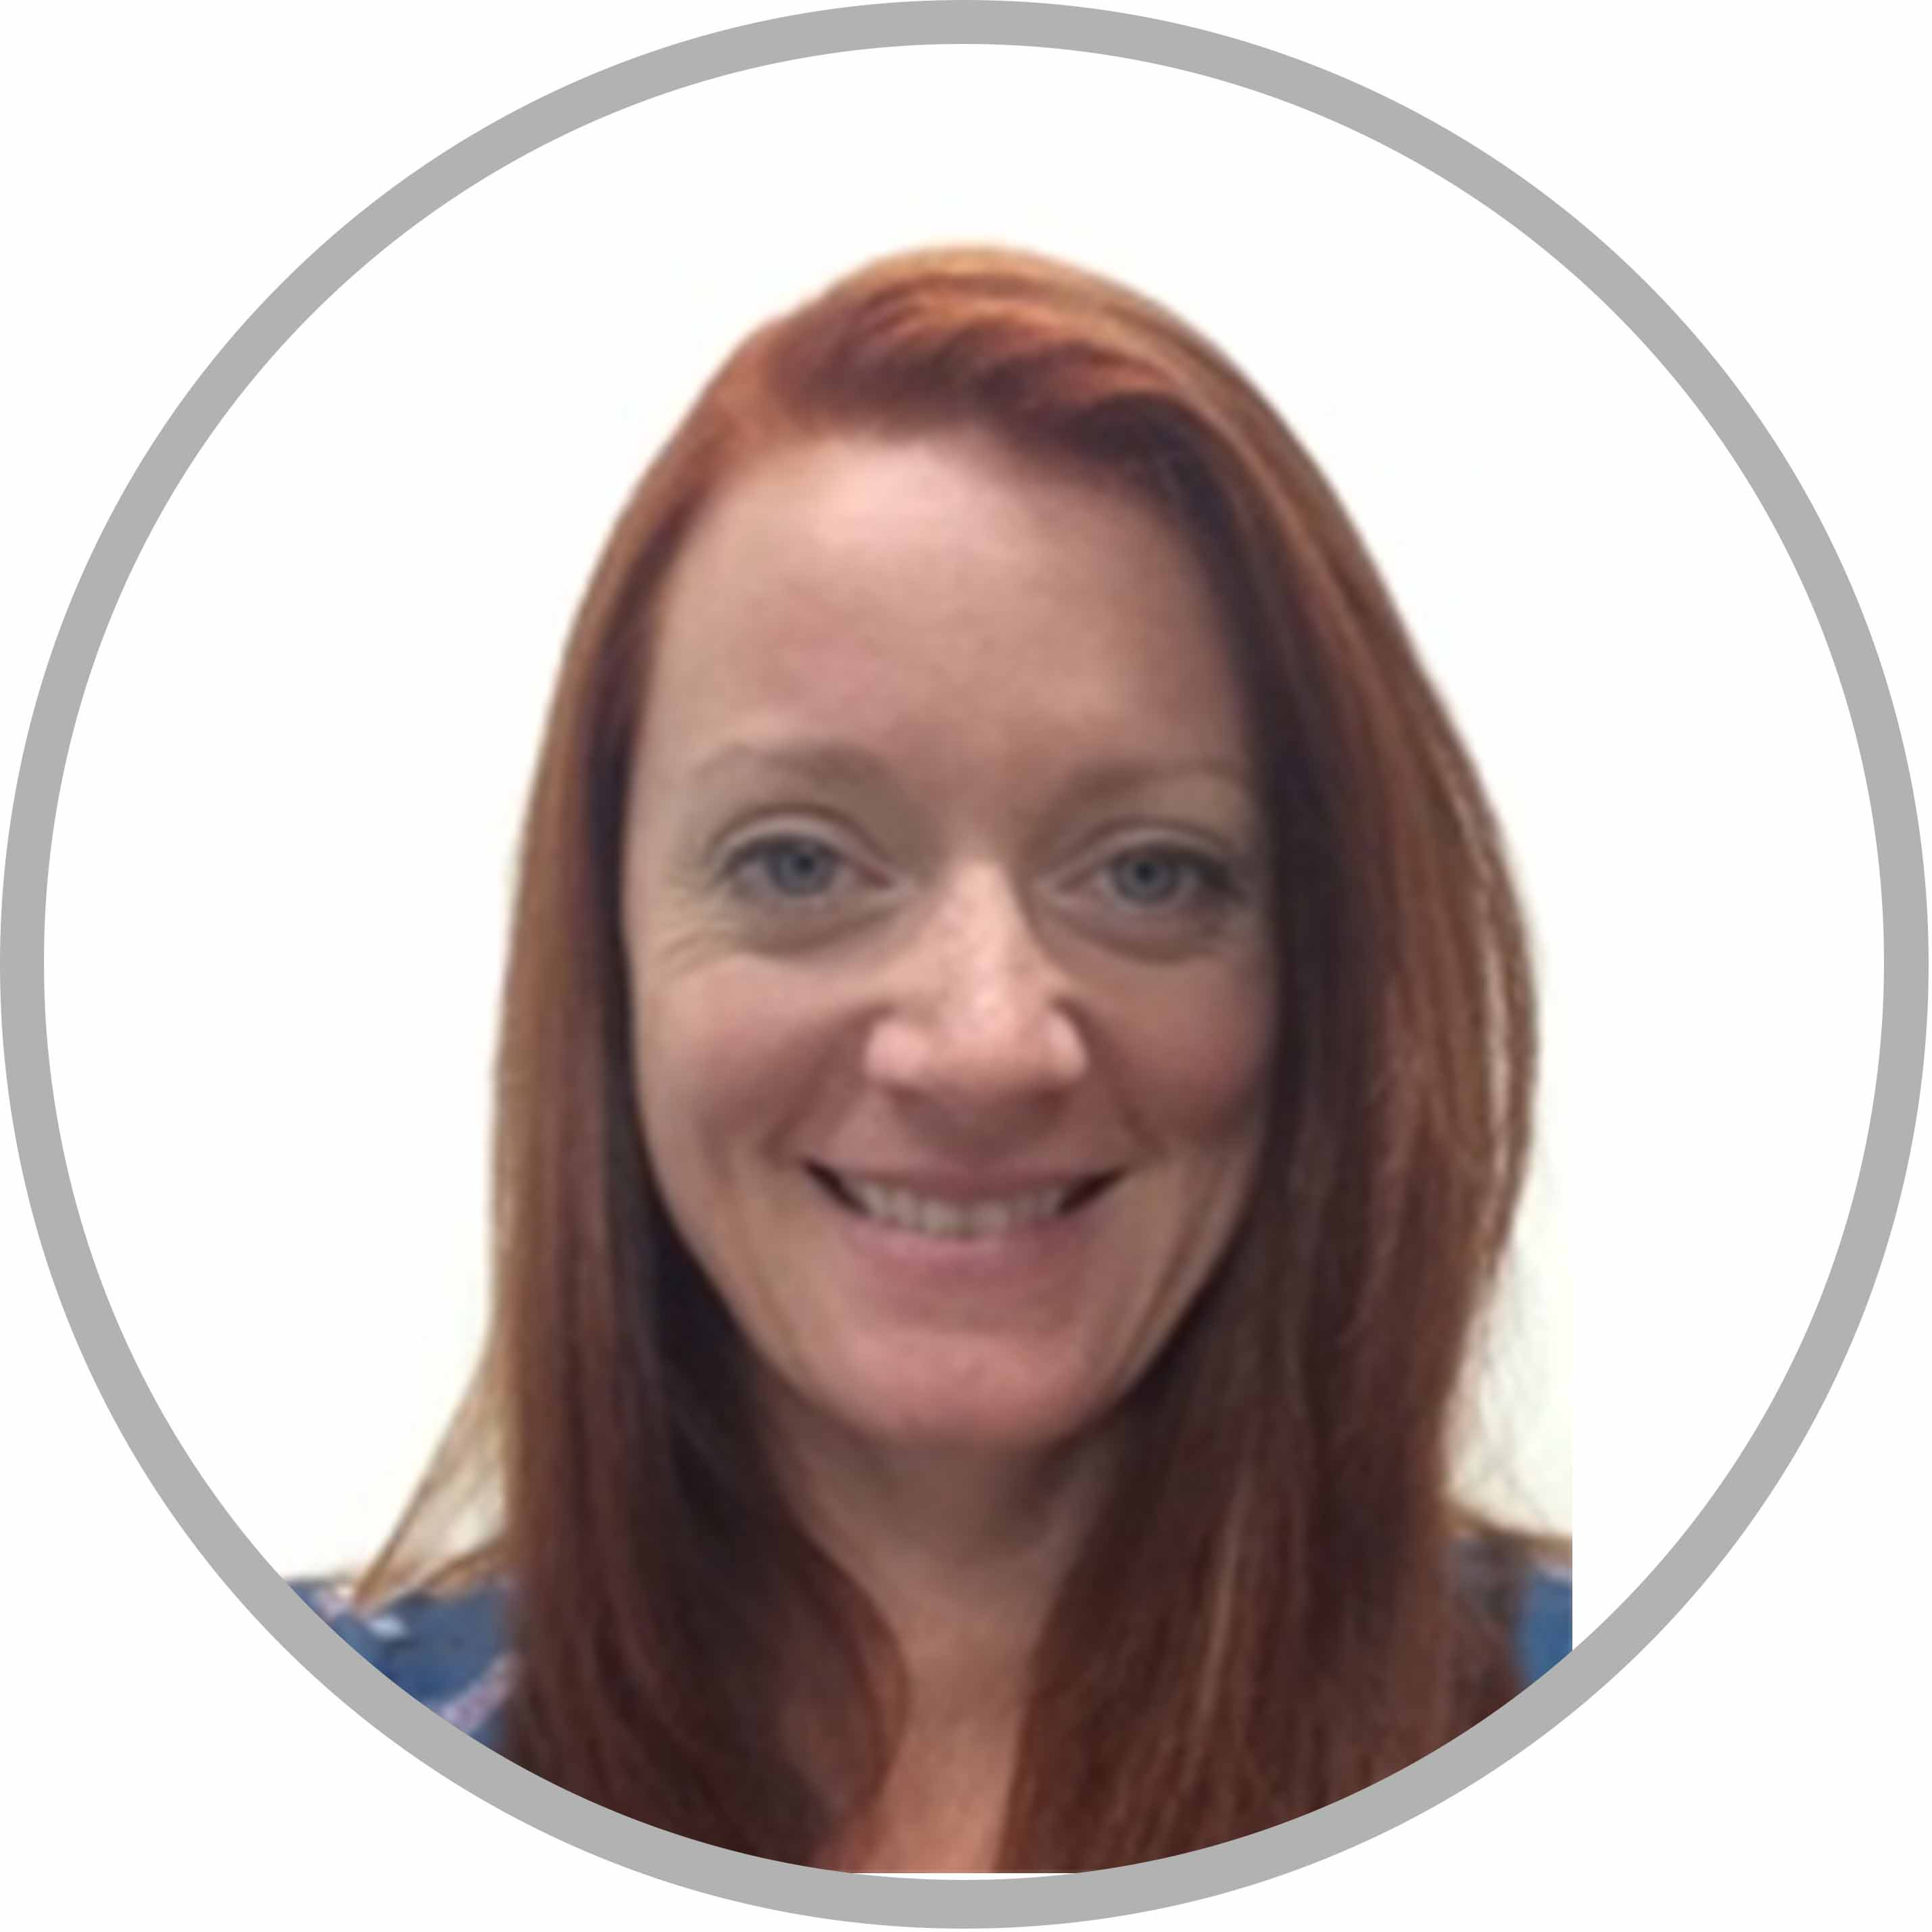 Debbie Wallace - Physiotherapist at Lilliput Health